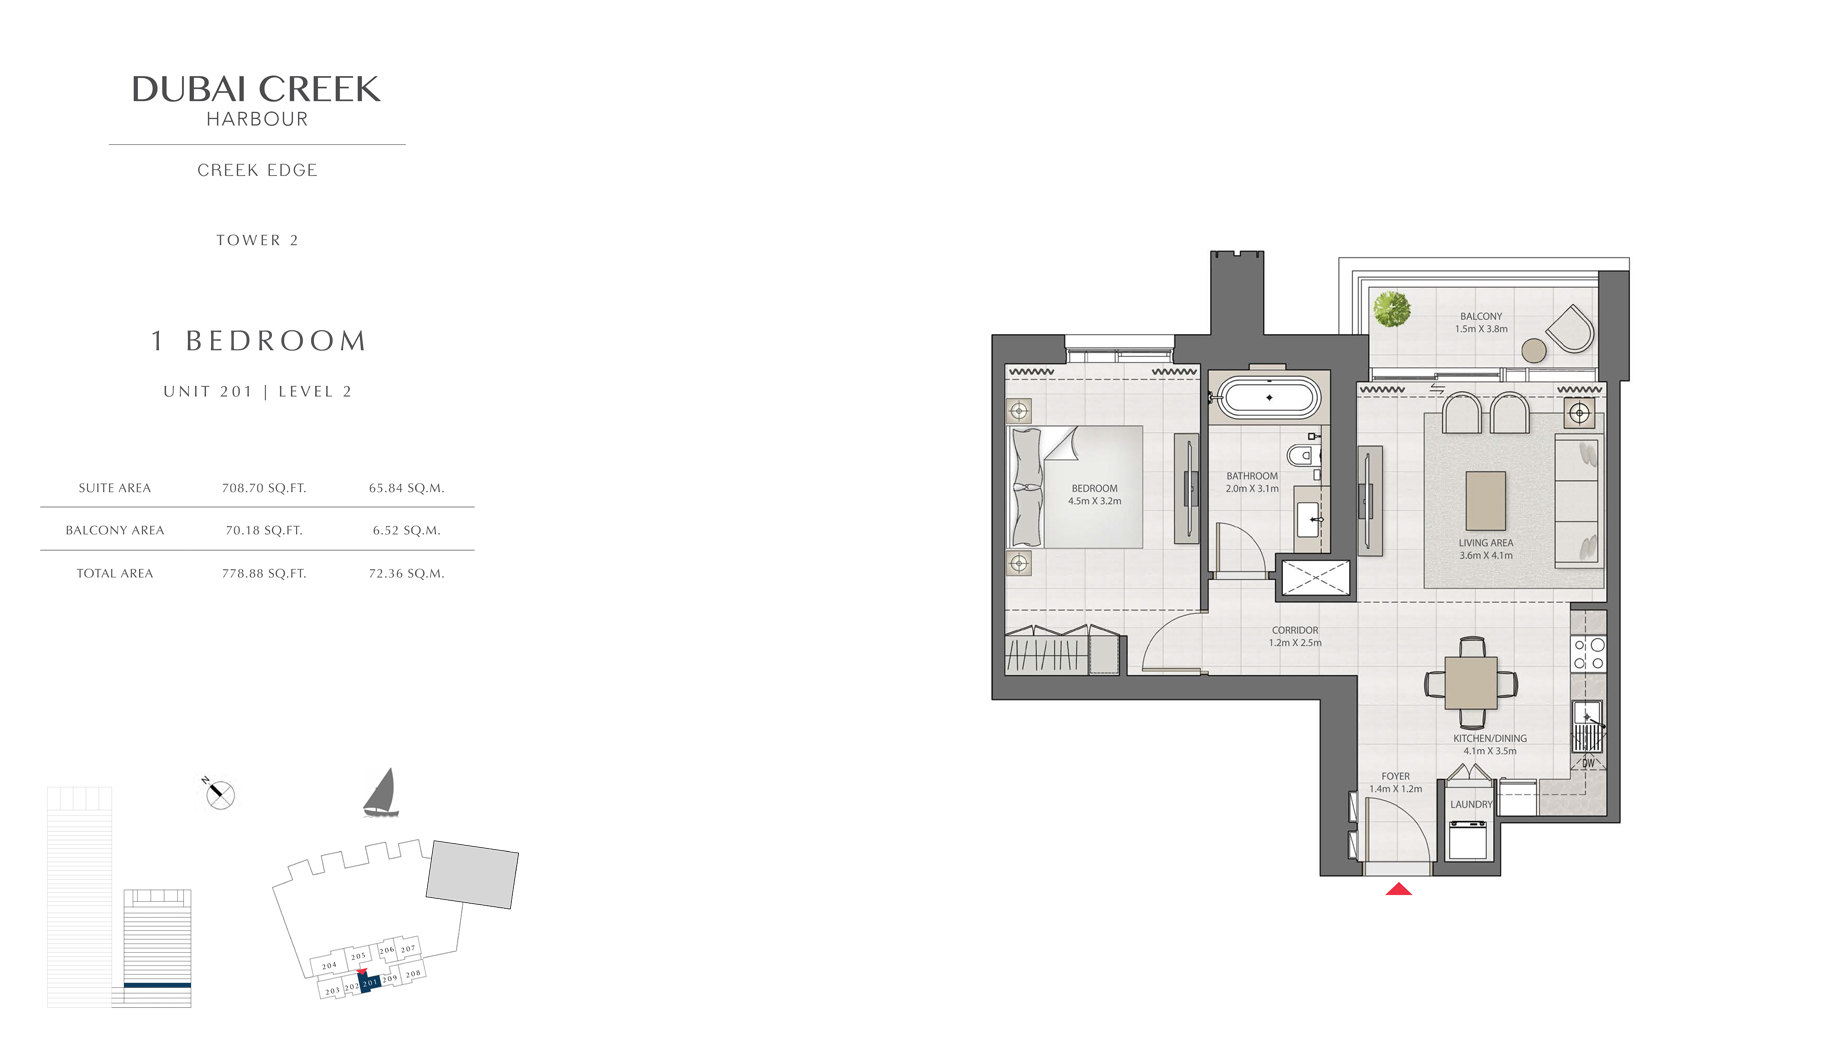 1 Bedroom Tower 2 Unit 201 Level 2 Size 778 sq.ft